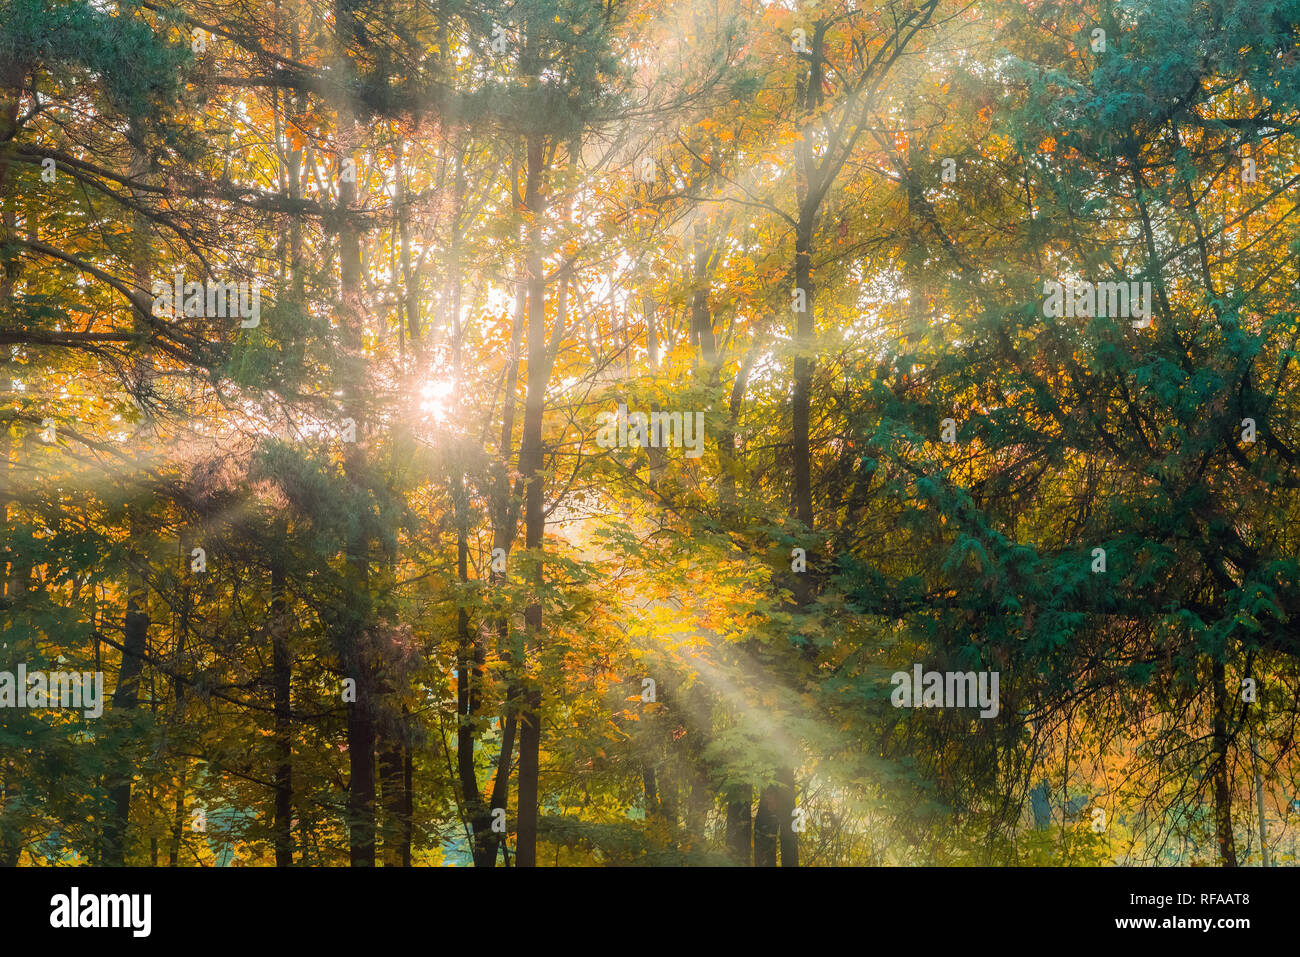 Warm autumn scenery in a forest, with the sun casting beautiful rays of light through the mist and trees - Stock Image